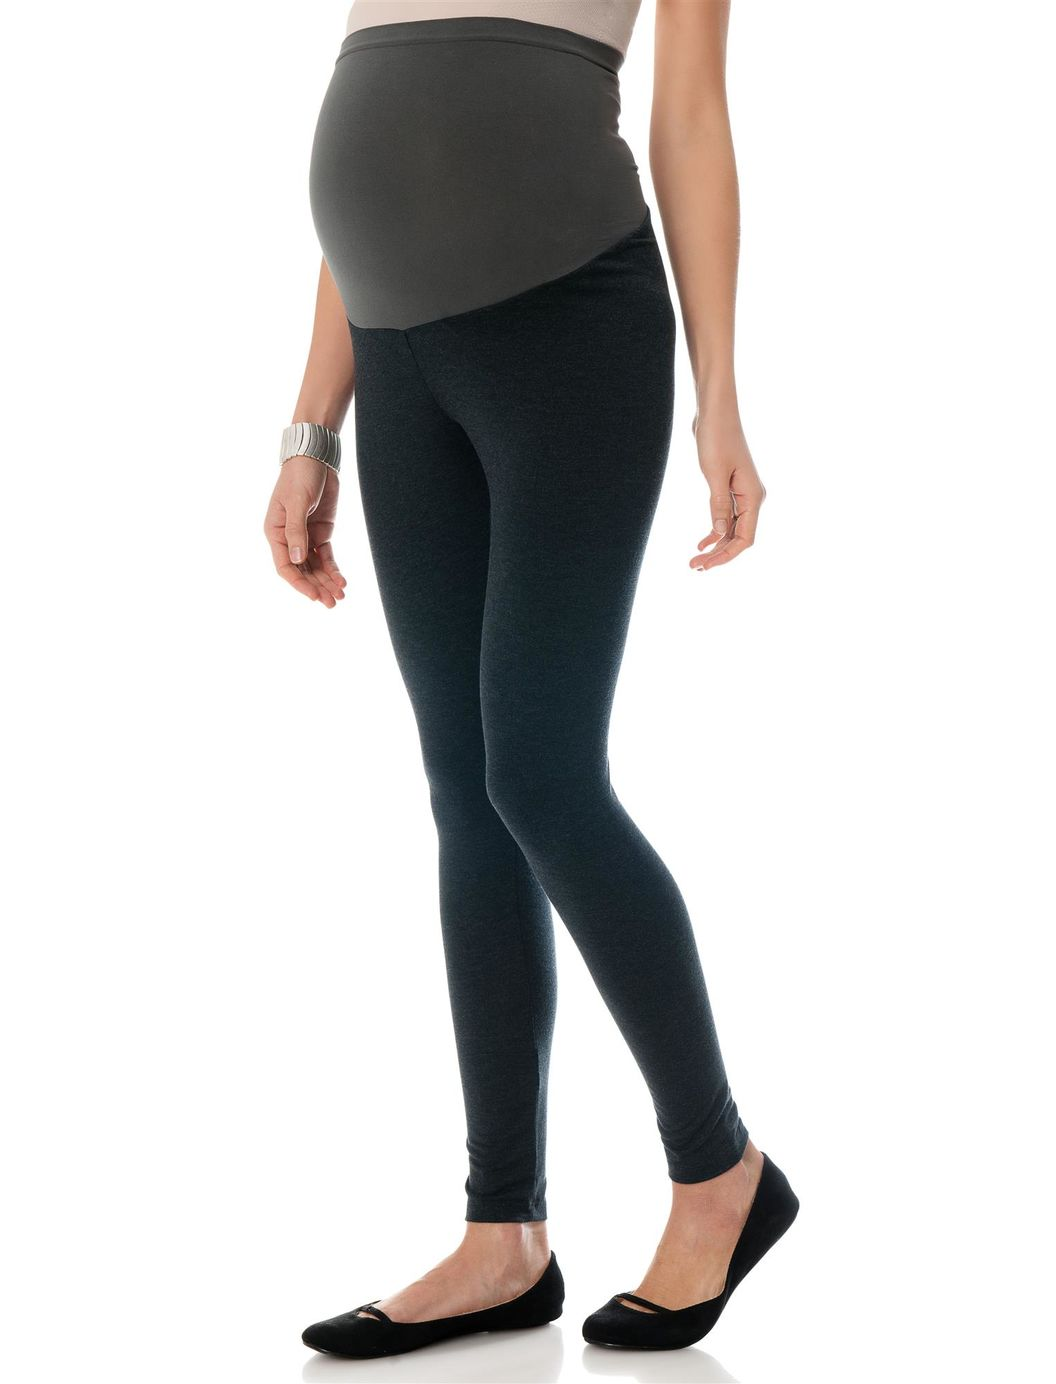 4d0d920ed1a8b These were the one and only pair of maternity leggings that I owned while I  was pregnant with my first. I LOVED them. I mentioned before that I wore my  ...